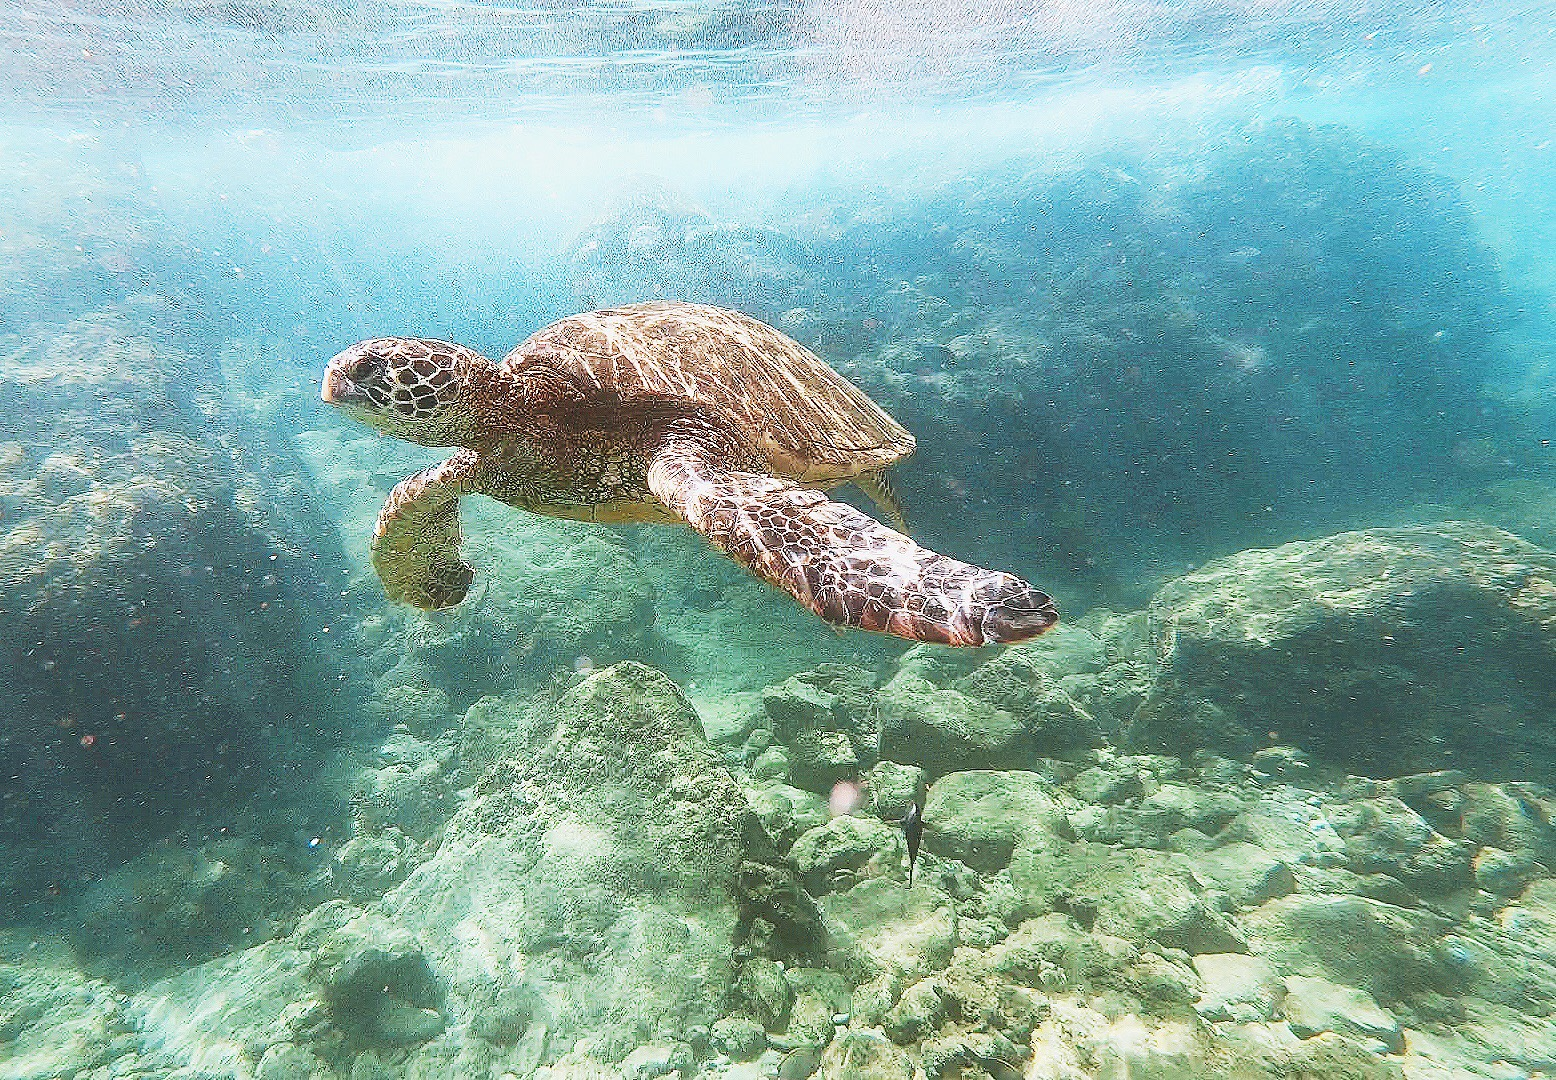 maui travel guide. snorkeling with turtles at black rock.